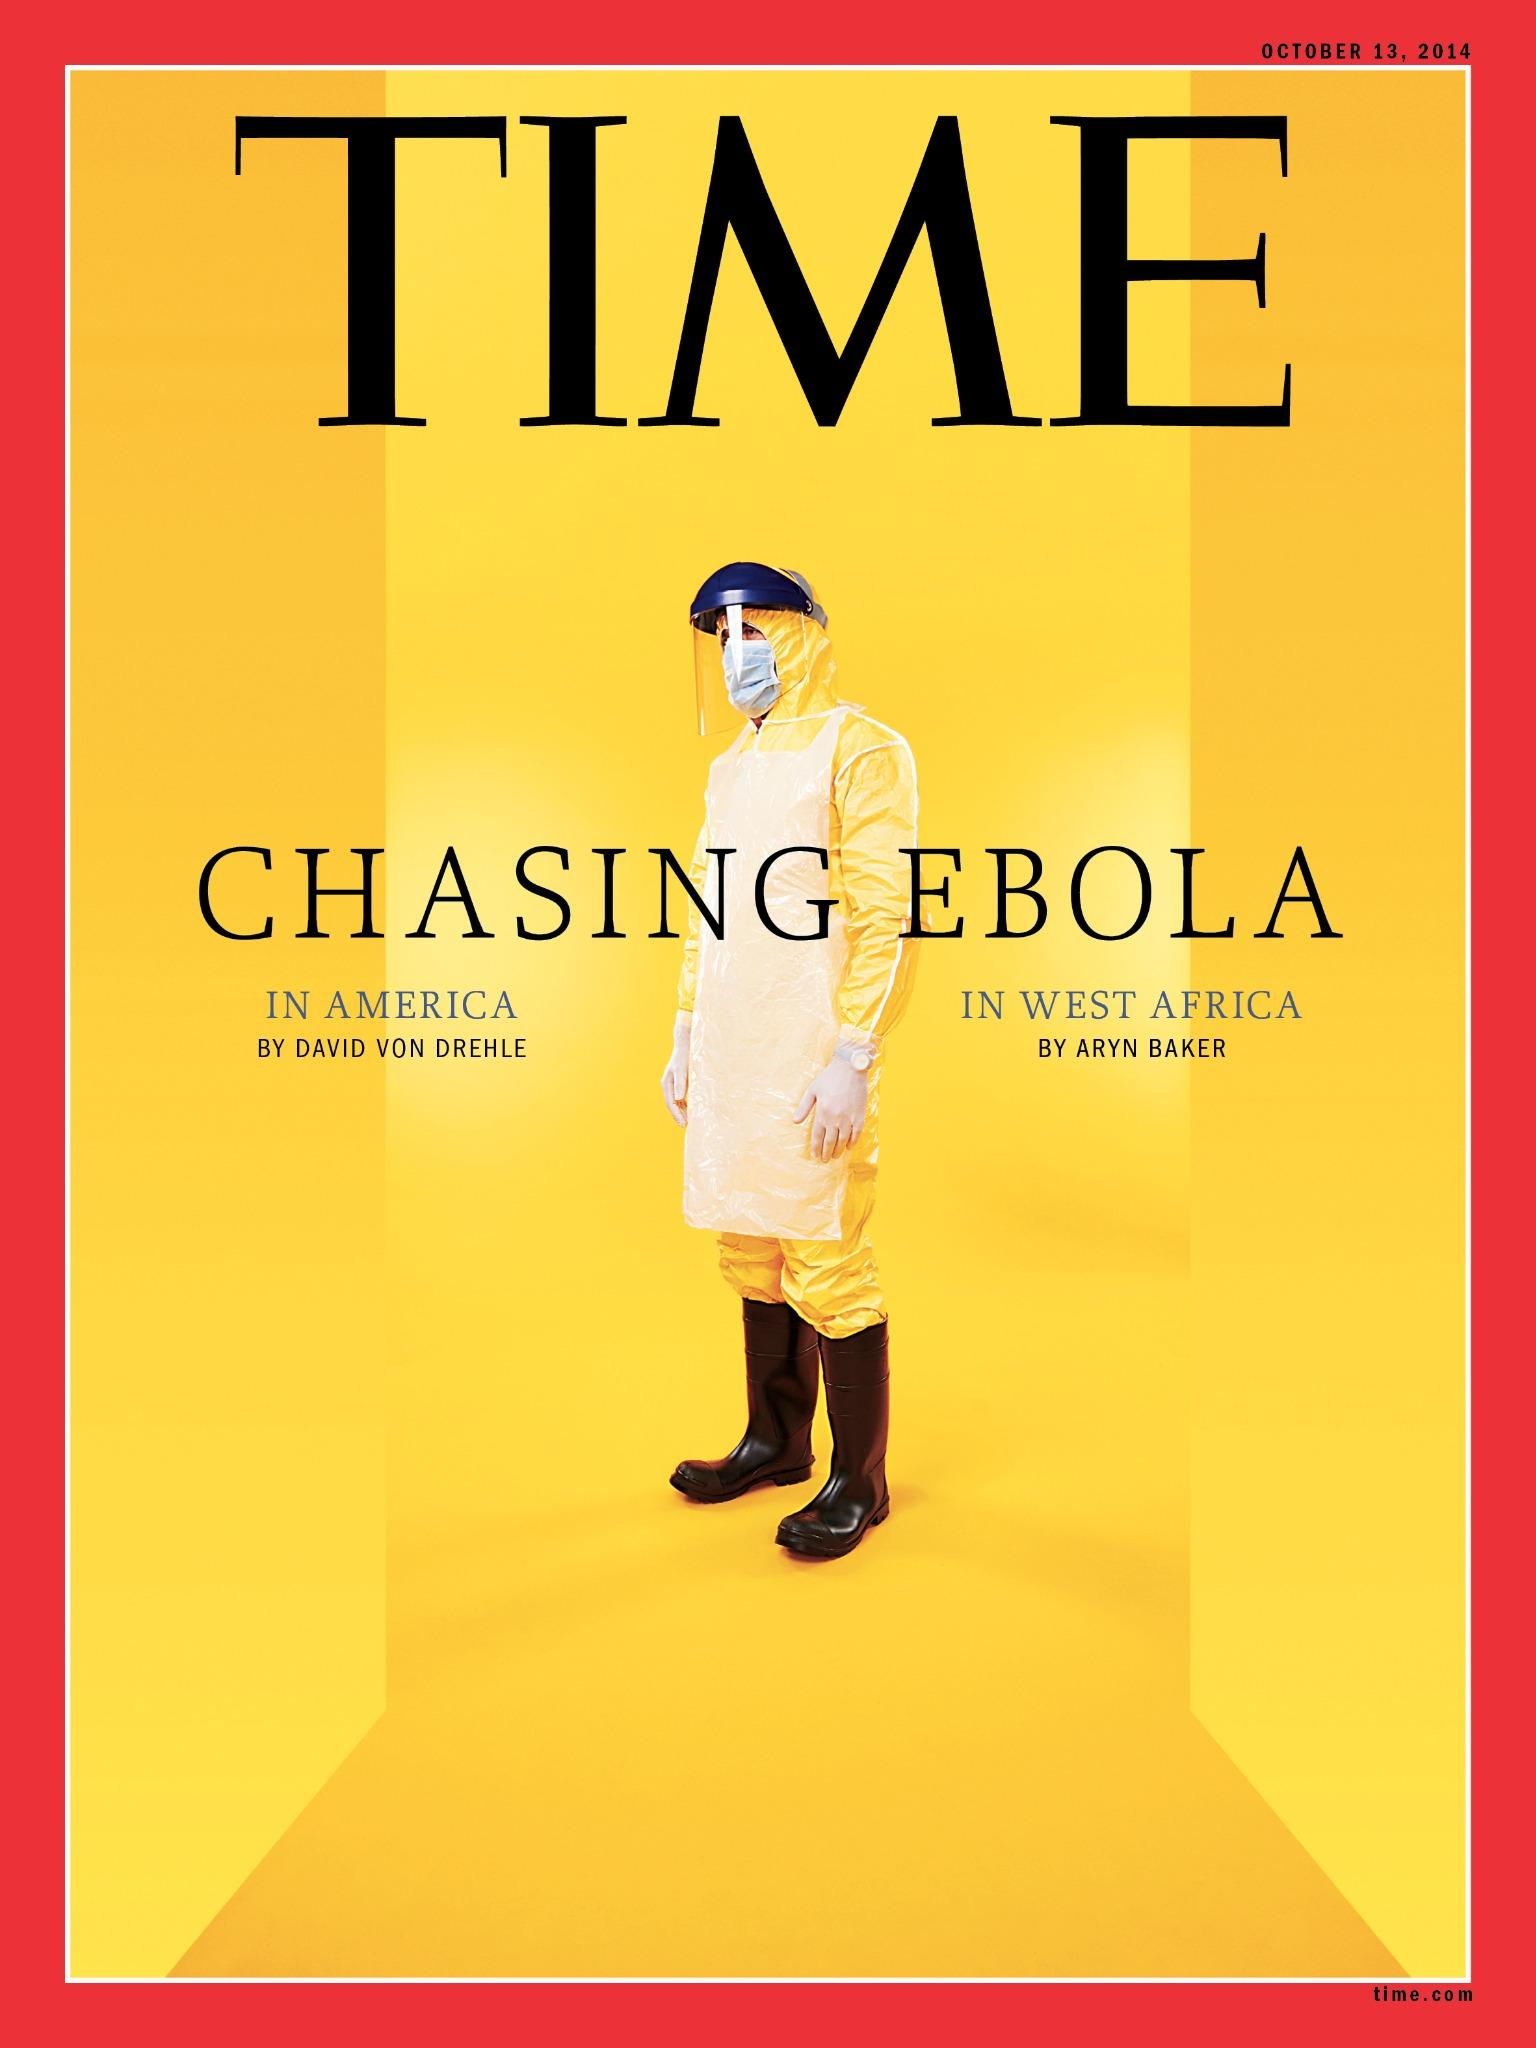 RT @TIME: TIME's new cover: Chasing Ebola. What the world needs to do to stop the deadly virus http://t.co/ghuOf5GuU8 http://t.co/nqTTFMxlru